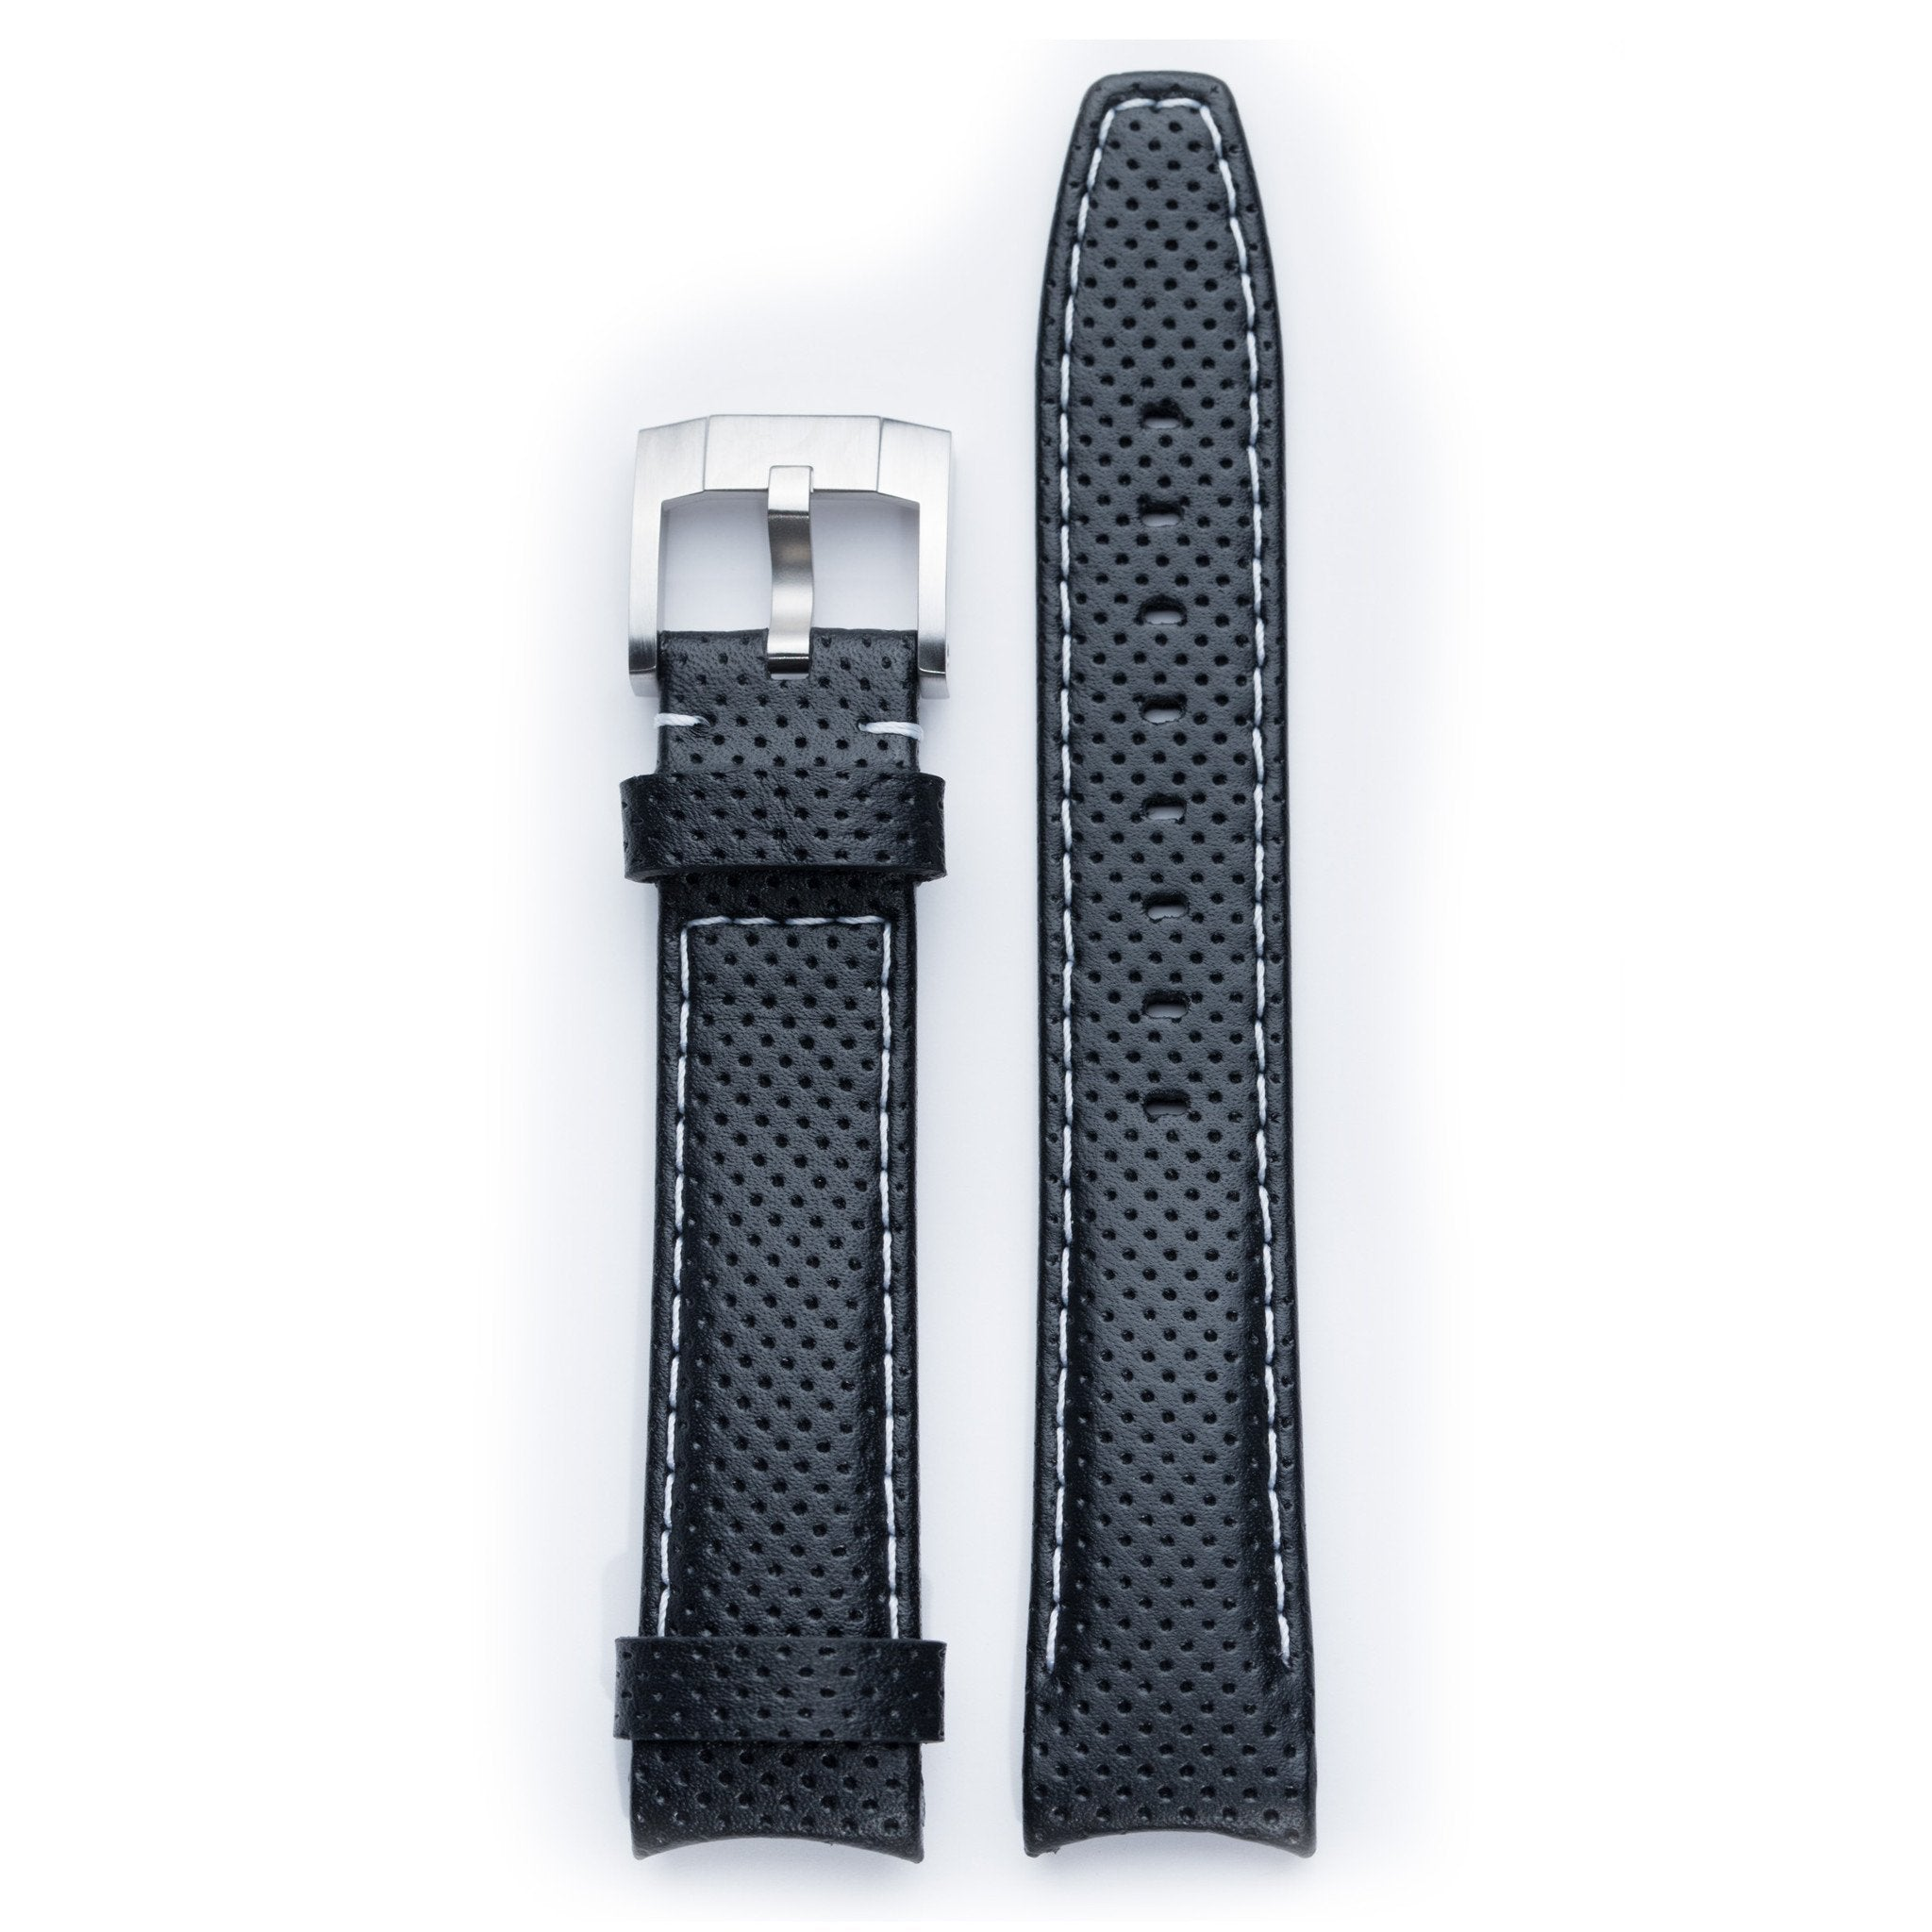 Everest Curved End Racing Leather Strap with Tang Buckle for Rolex Sea-Dweller